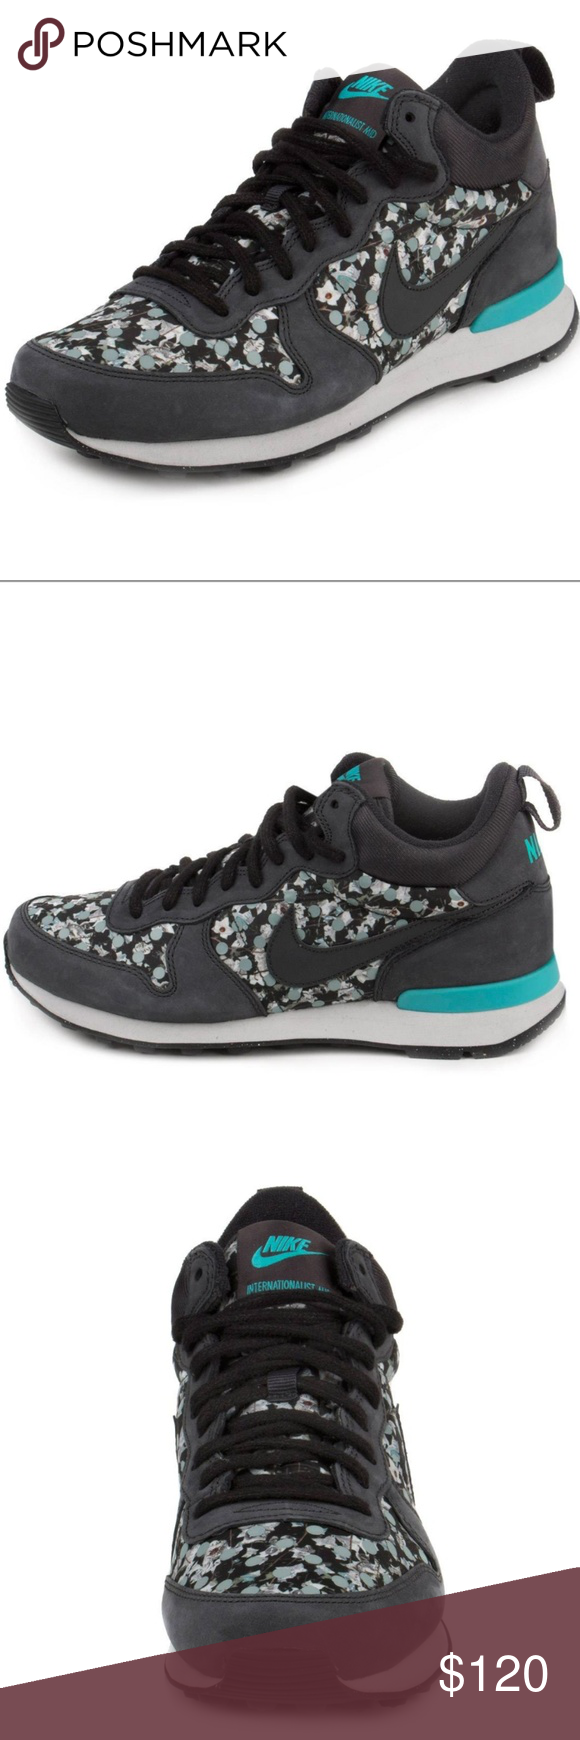 low priced f8af6 dfb10 NWOB Nike Women Internationalist Mid Liberty Sneak A very rare, premium  pair of Nike Sportswear